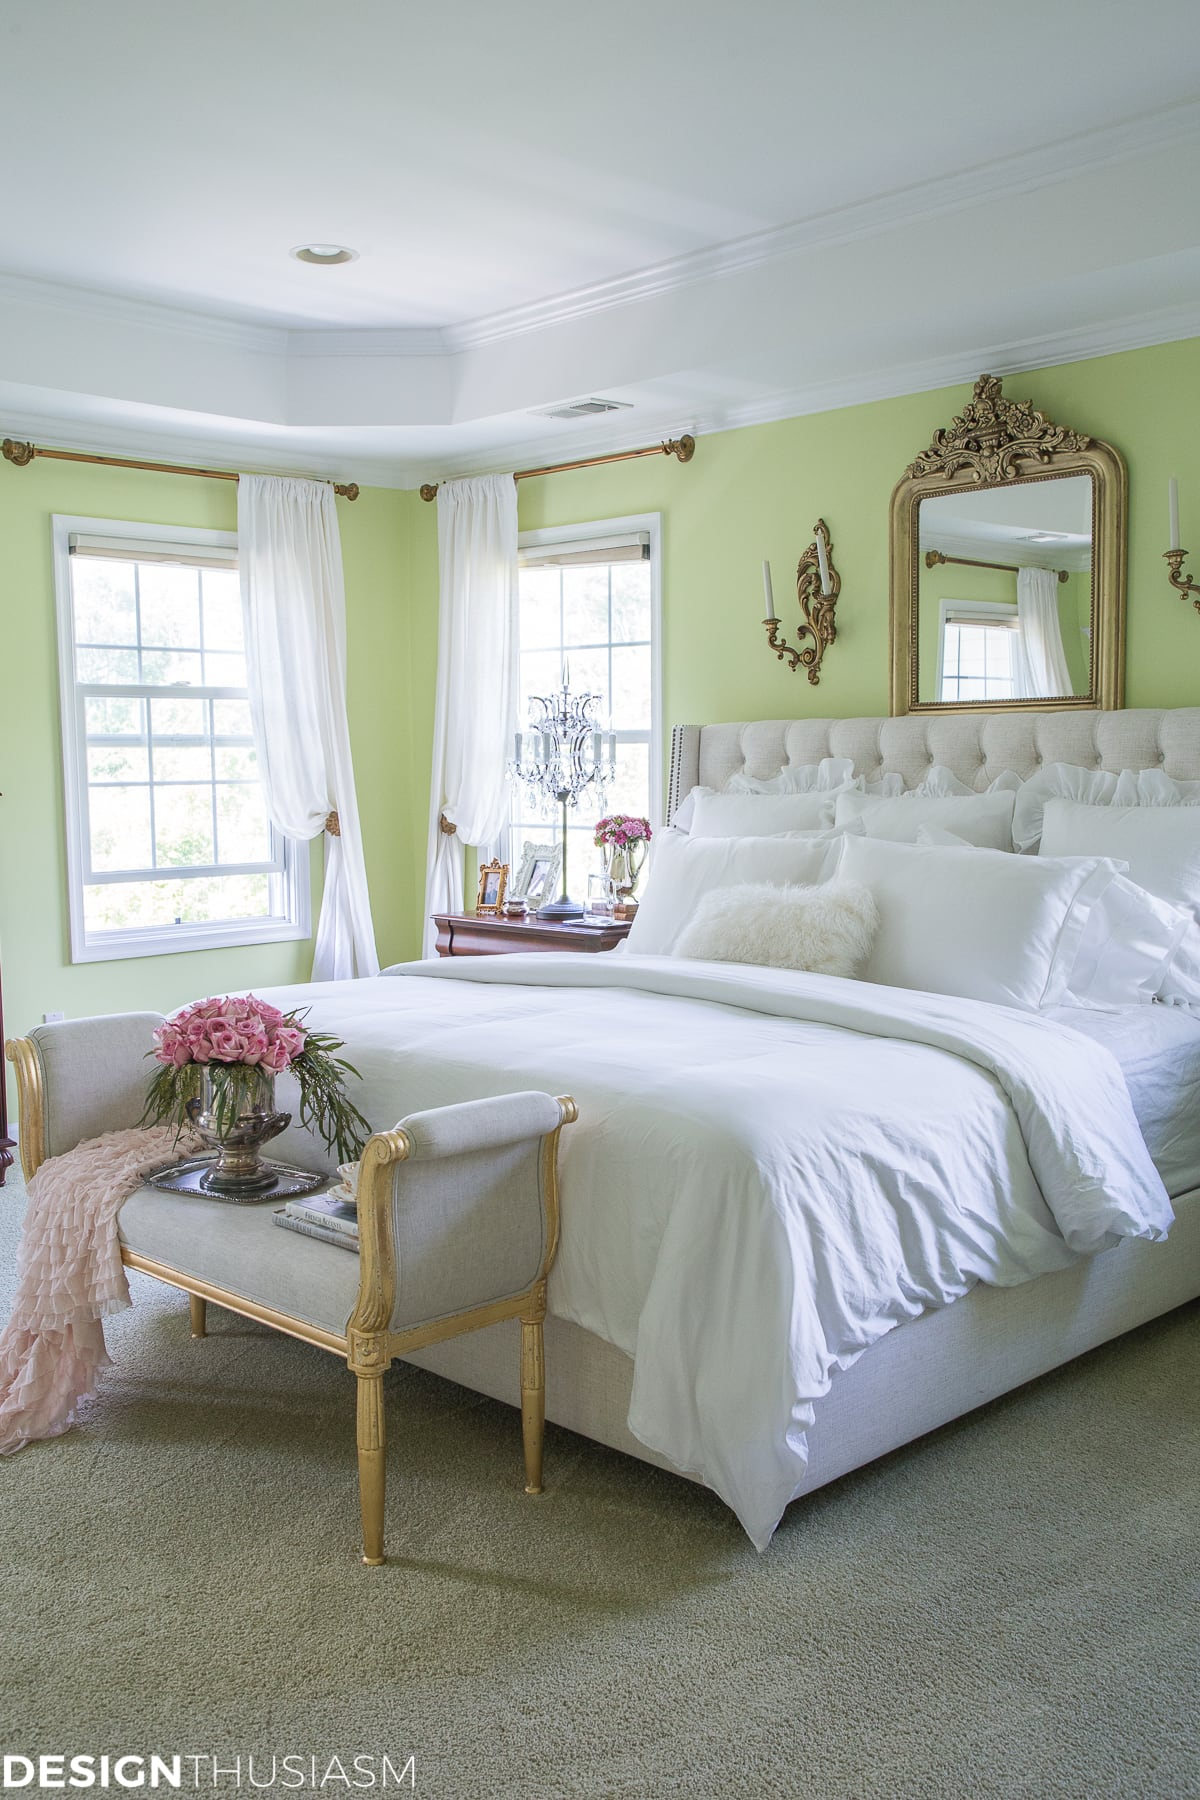 Master Bedroom Ideas: 7 Tips for Creating a Dreamy Updated ... on Master Bedroom Ideas  id=81245